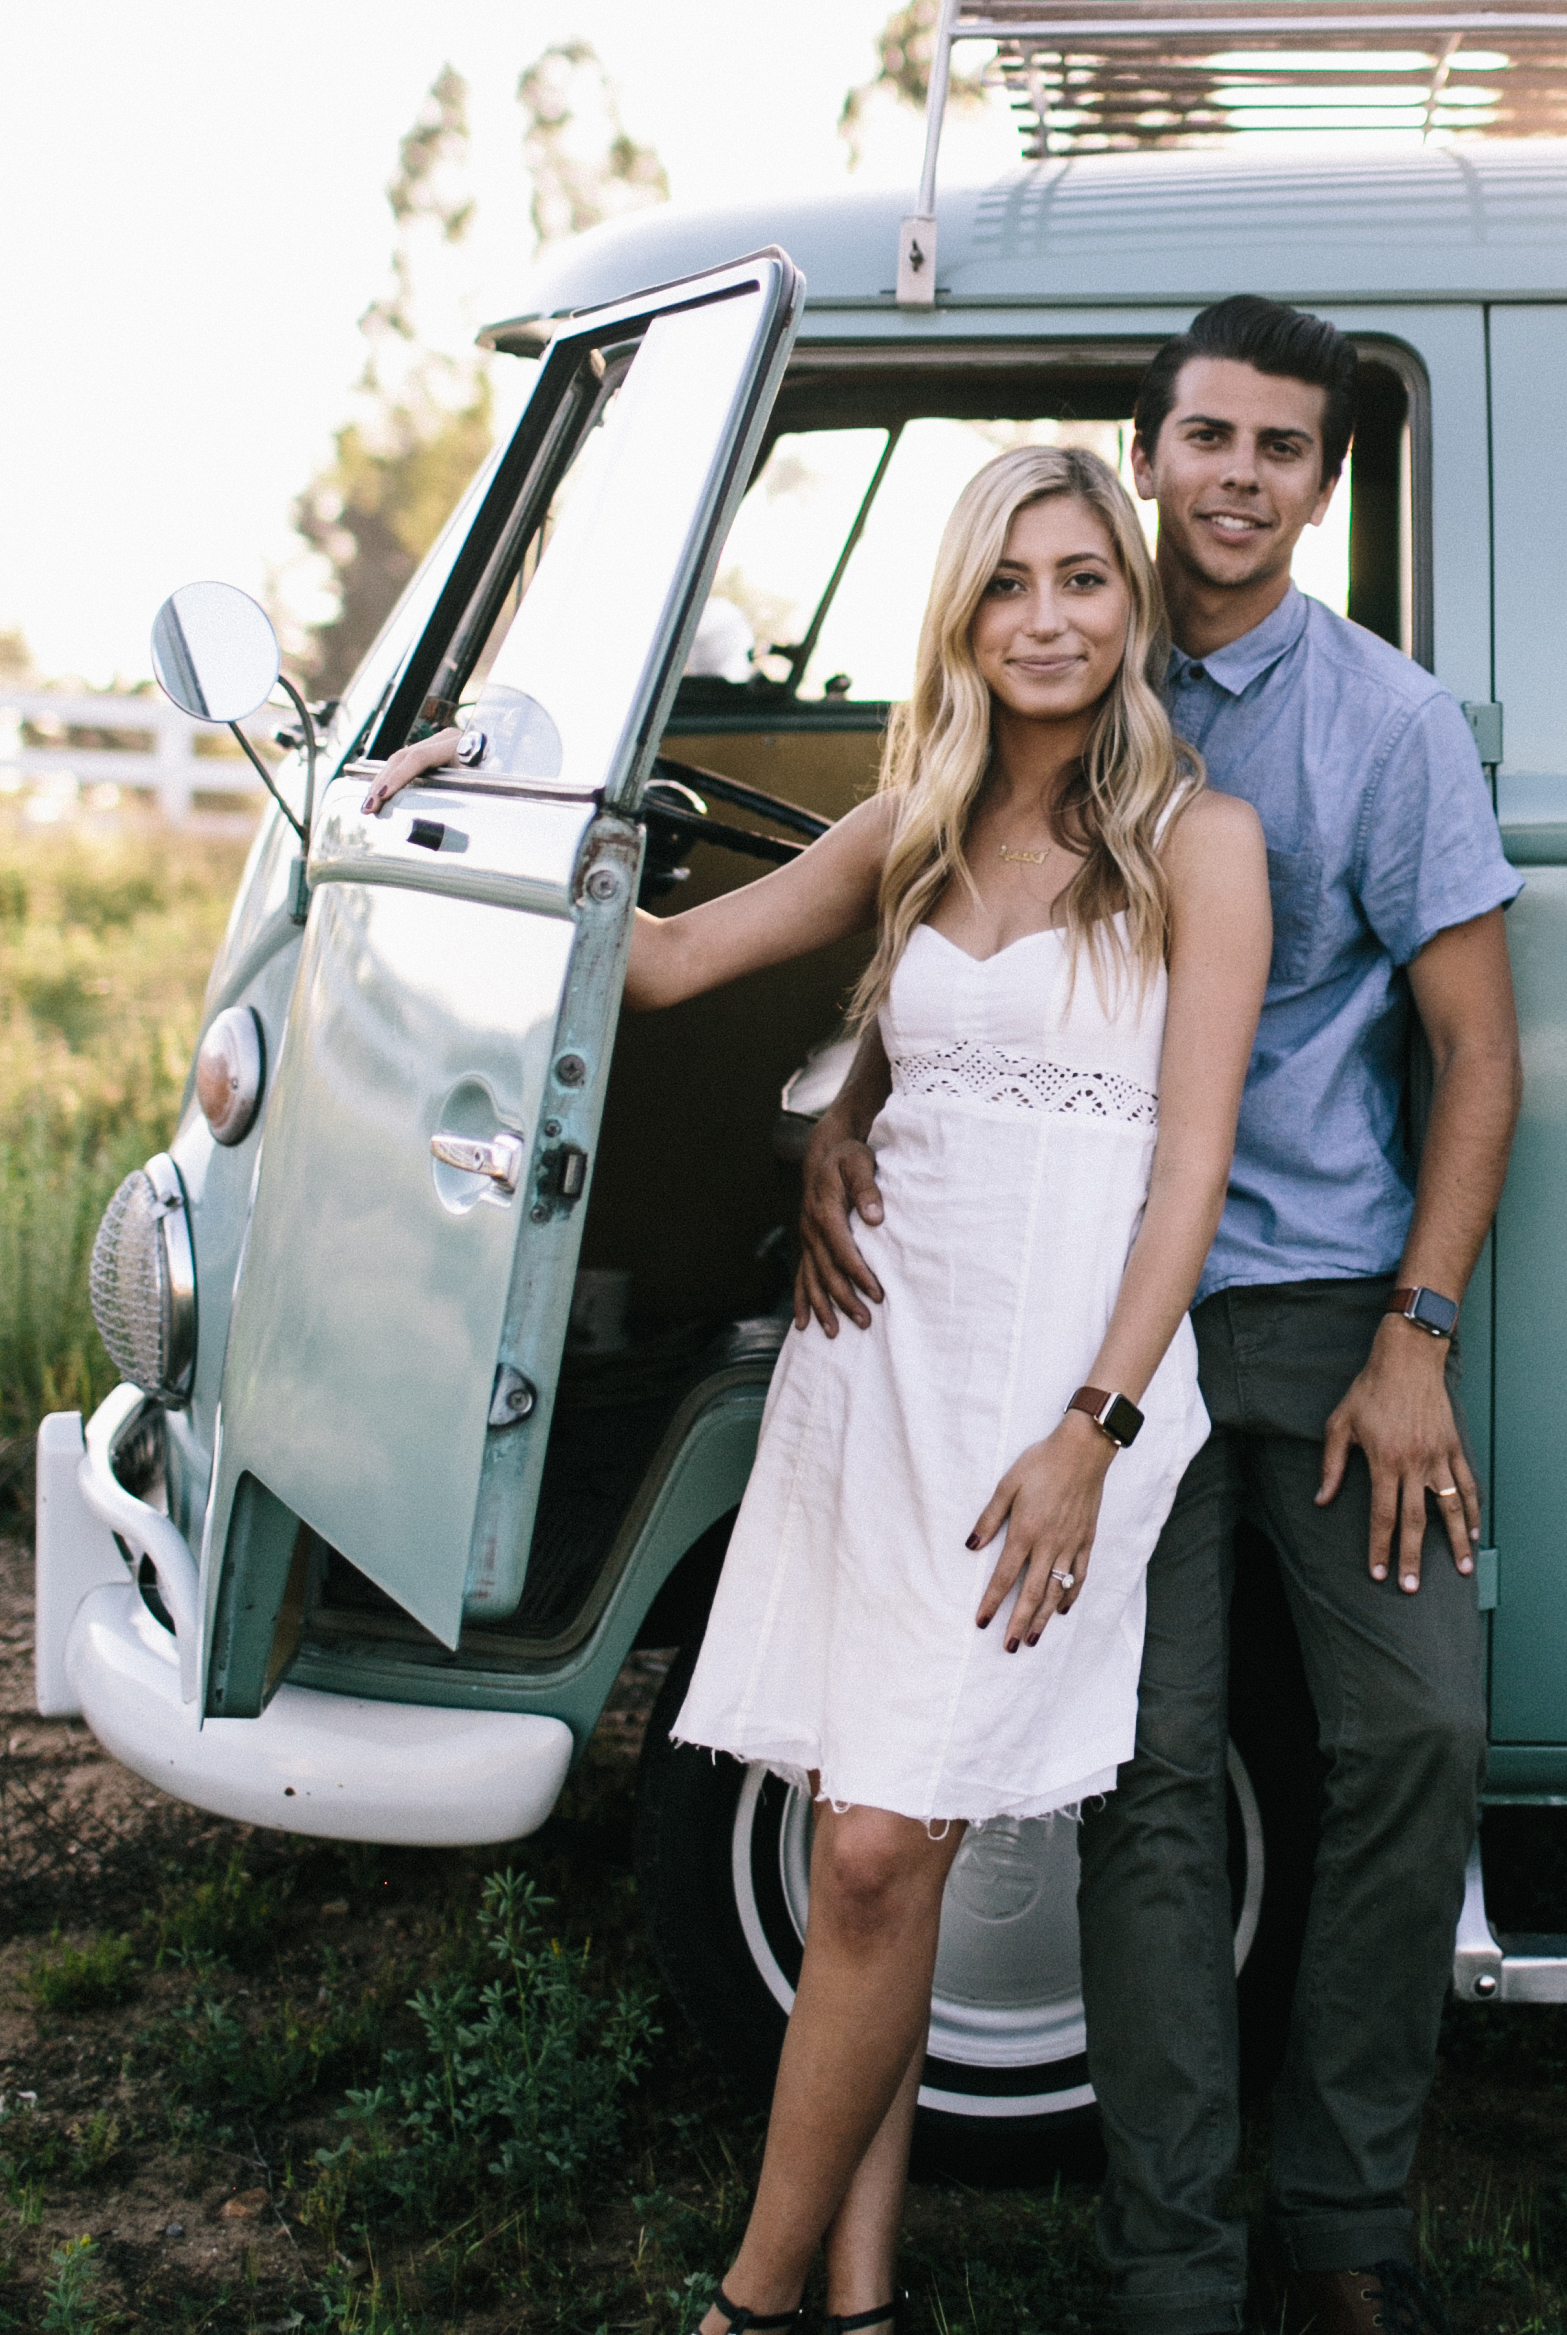 Nick and Scout founded The Photo Bus and continue to own and operate their boutique booths in the Southern California area. If your planing on booking the bus for your event expect this couple to be joining you as well. Hailing from Encinitas, CA they continue to attend each and every event, from exclusive Coachella afterparties to your wedding day.